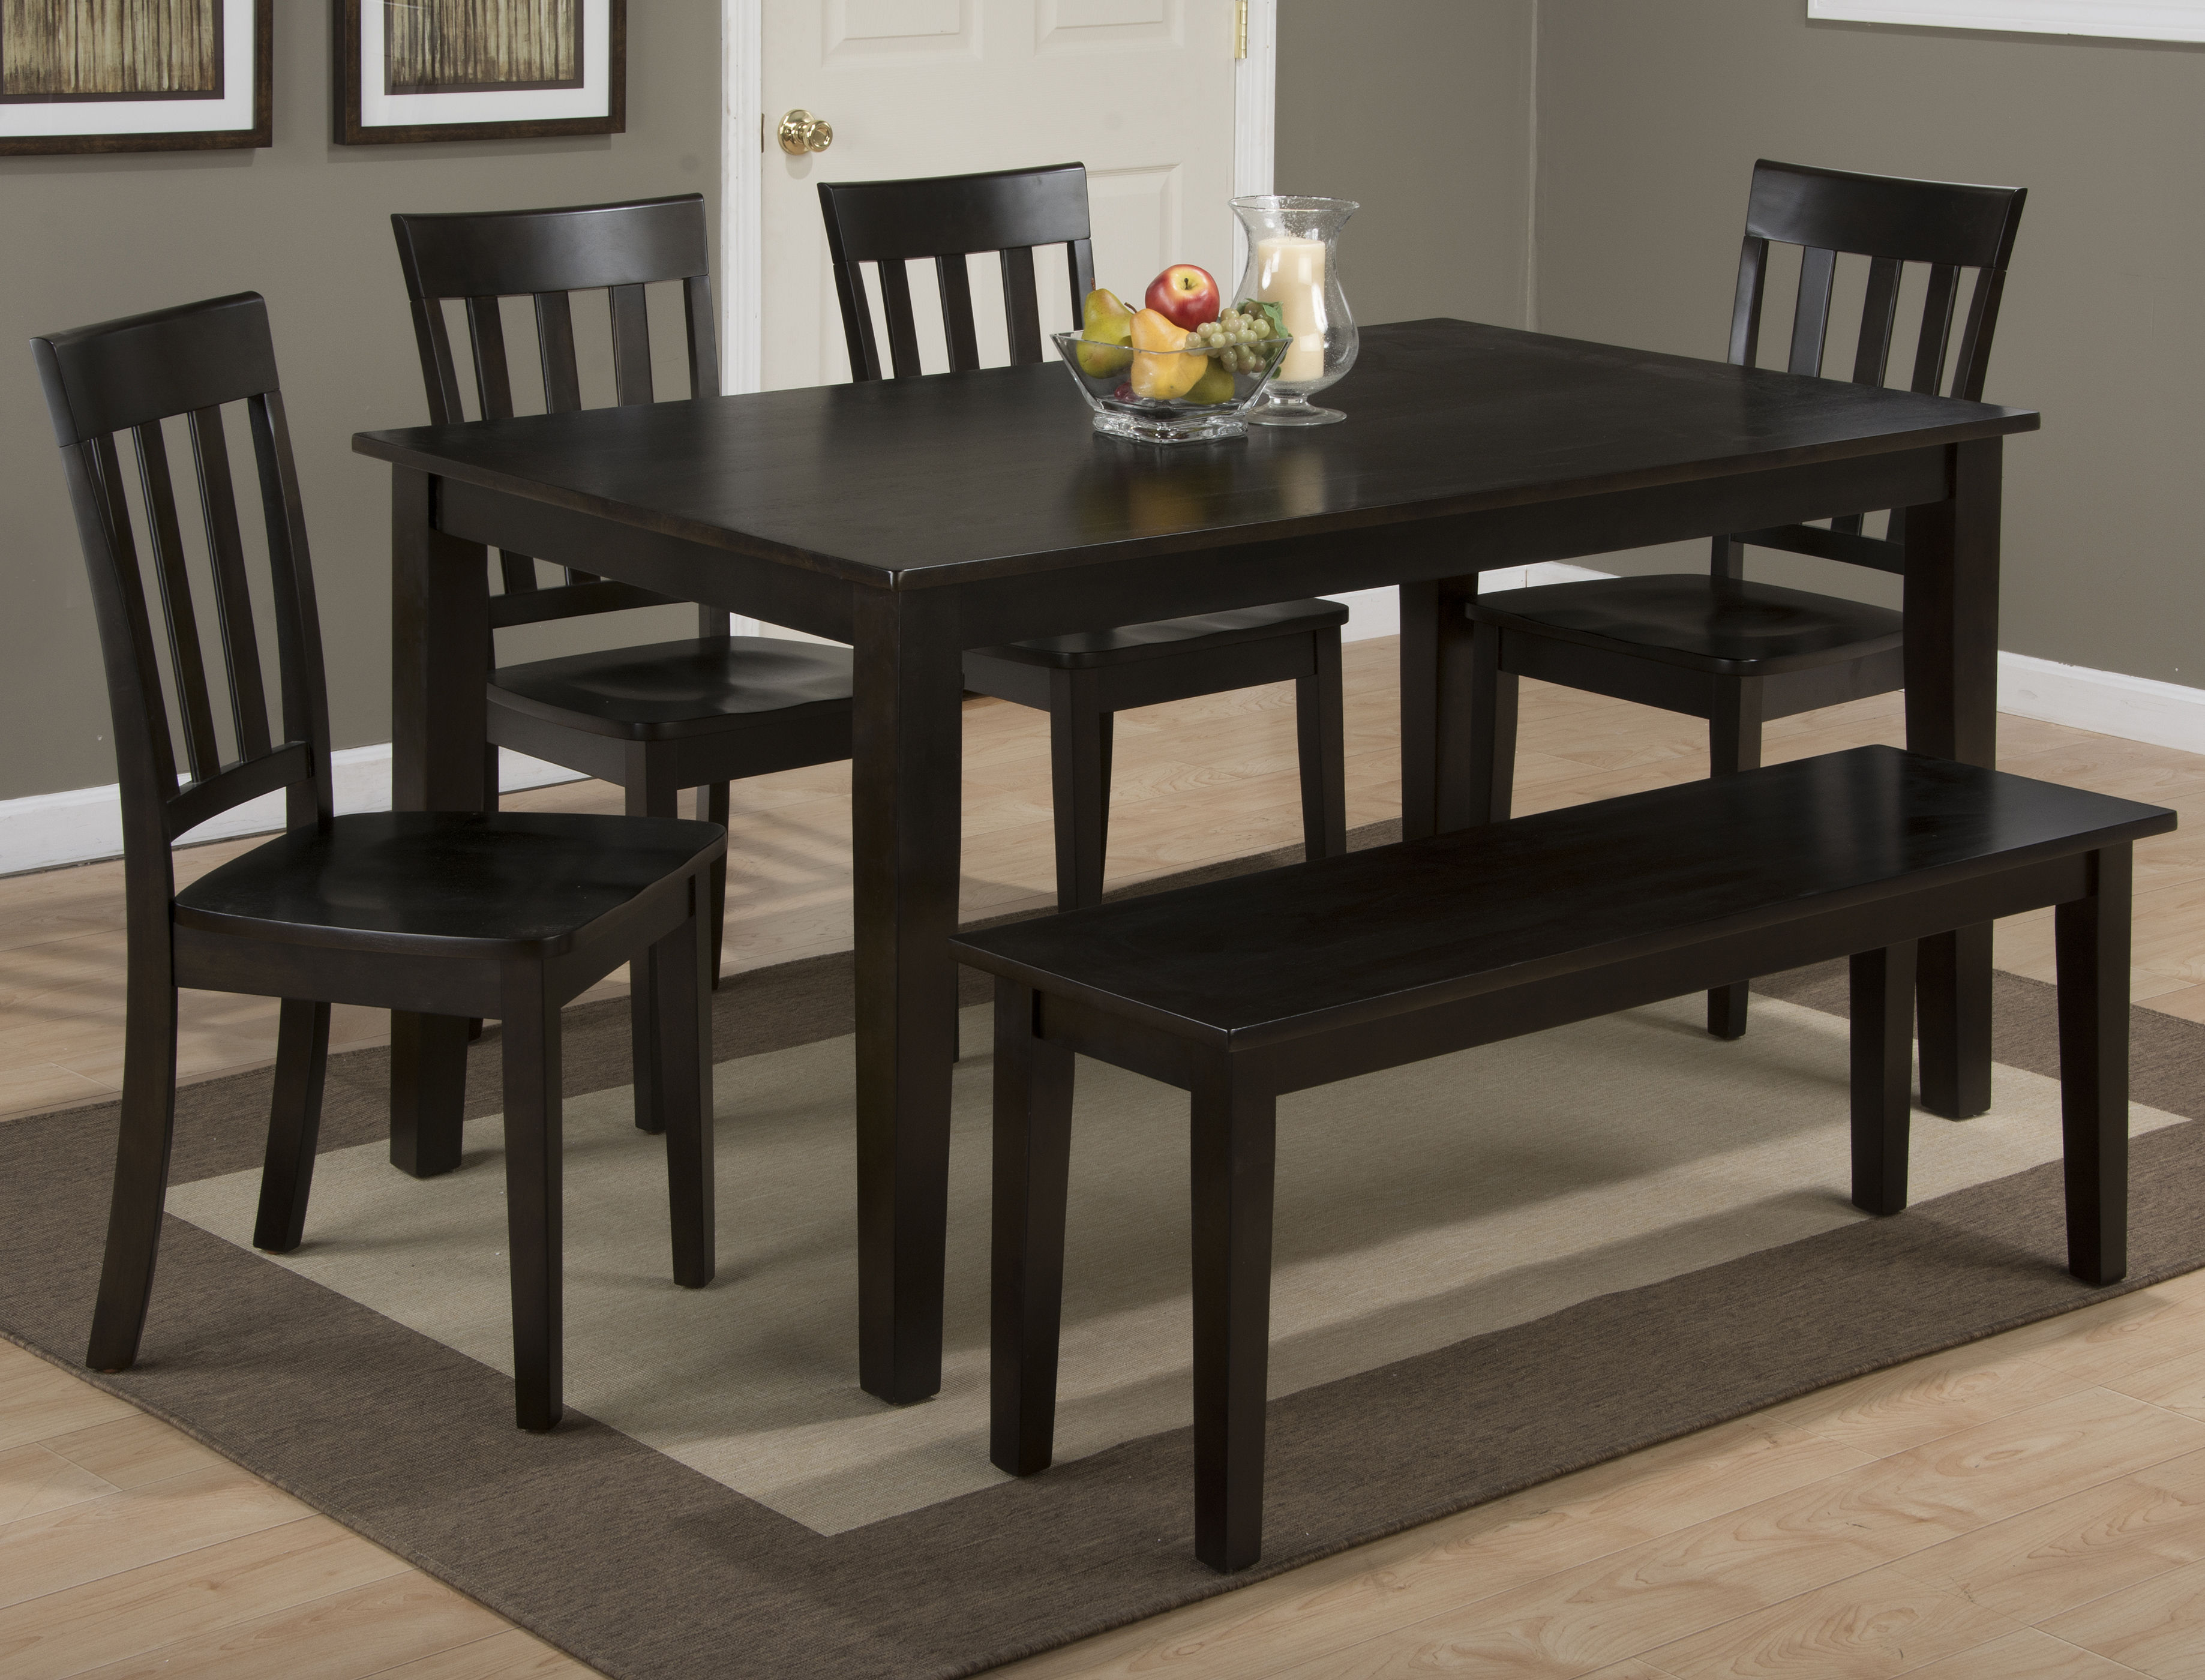 espresso wood rectangle 6pc dining room set kitchen